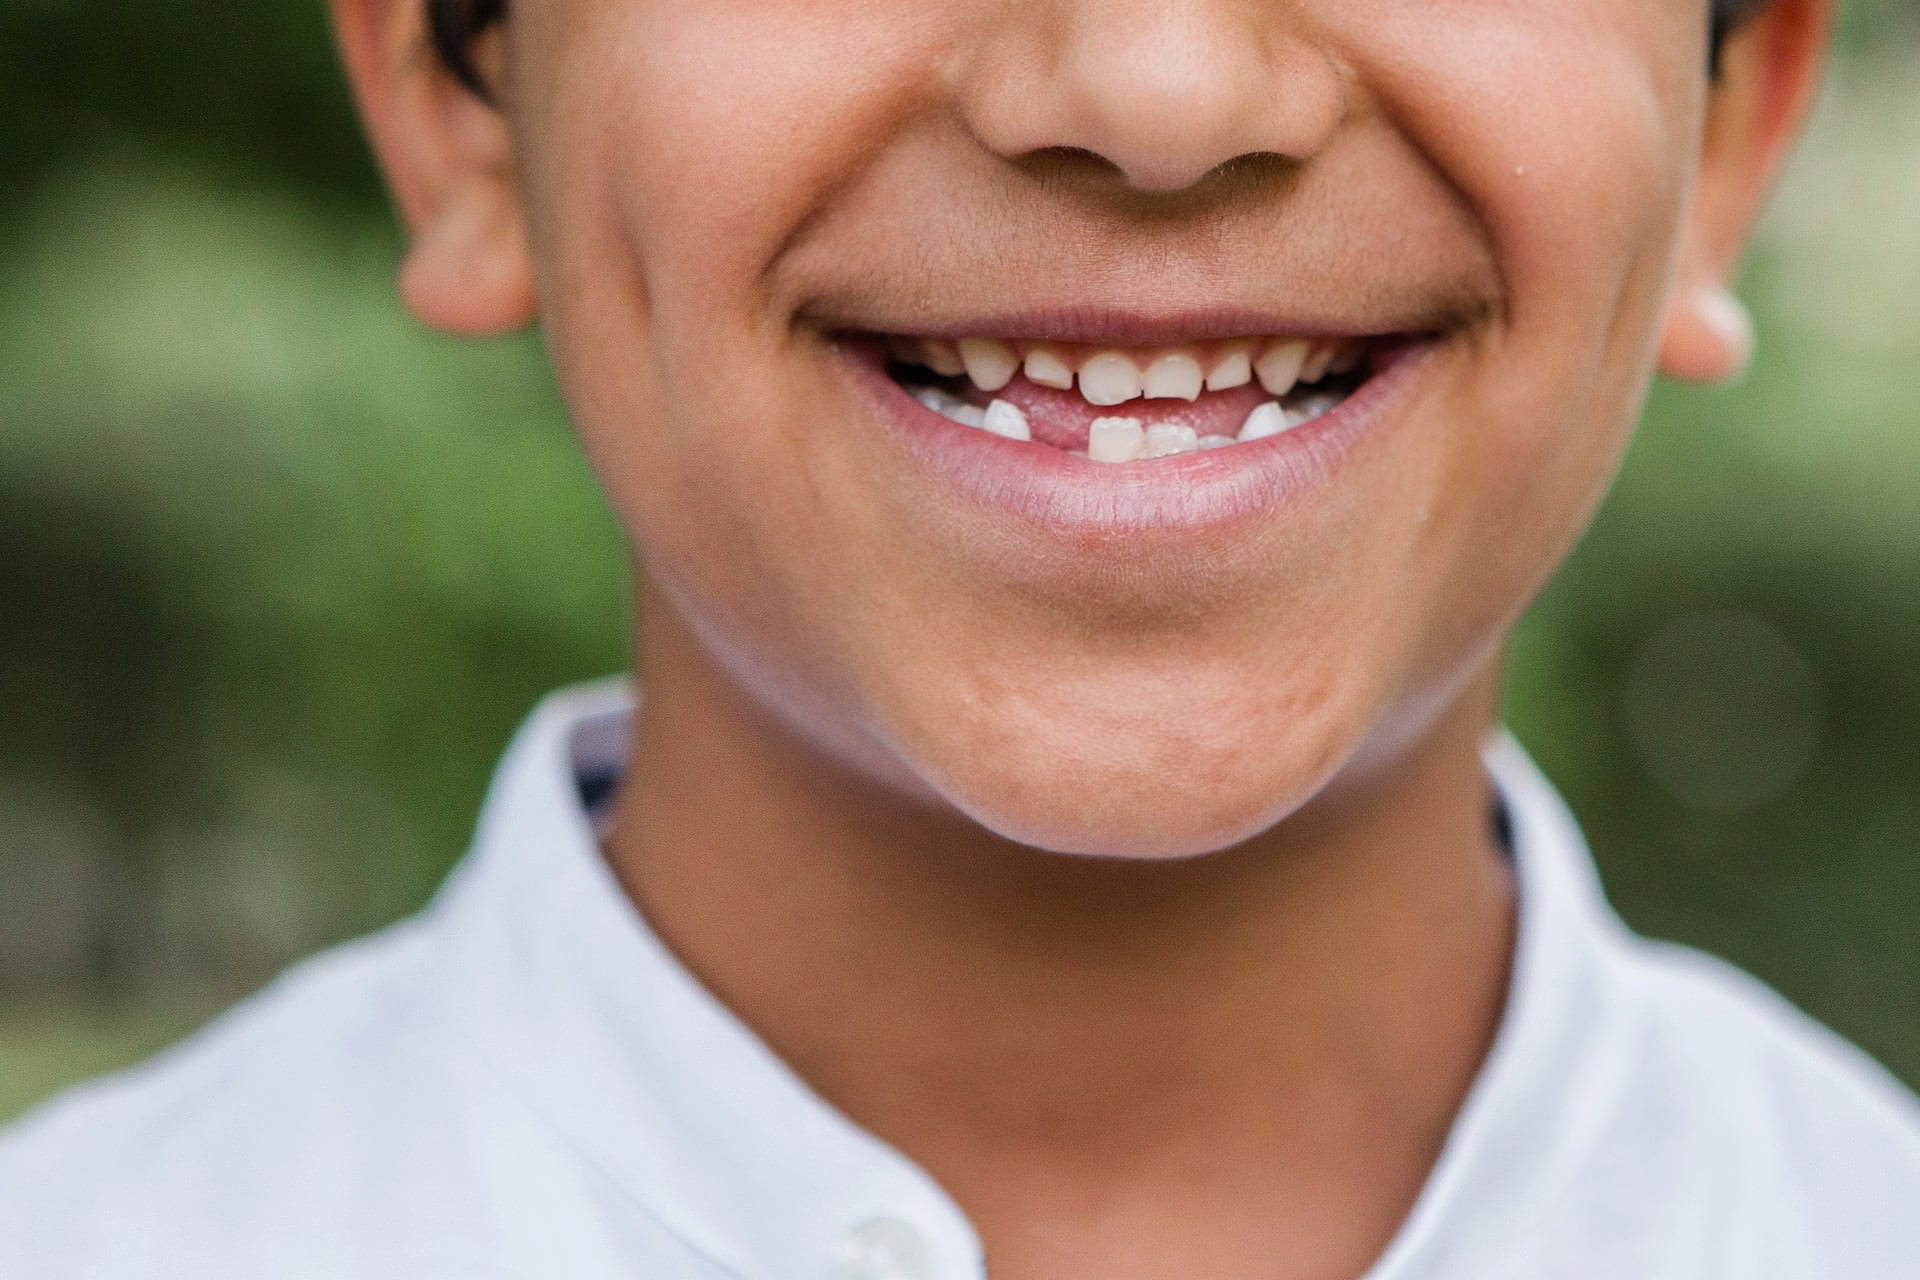 close up image of young boy's mouth